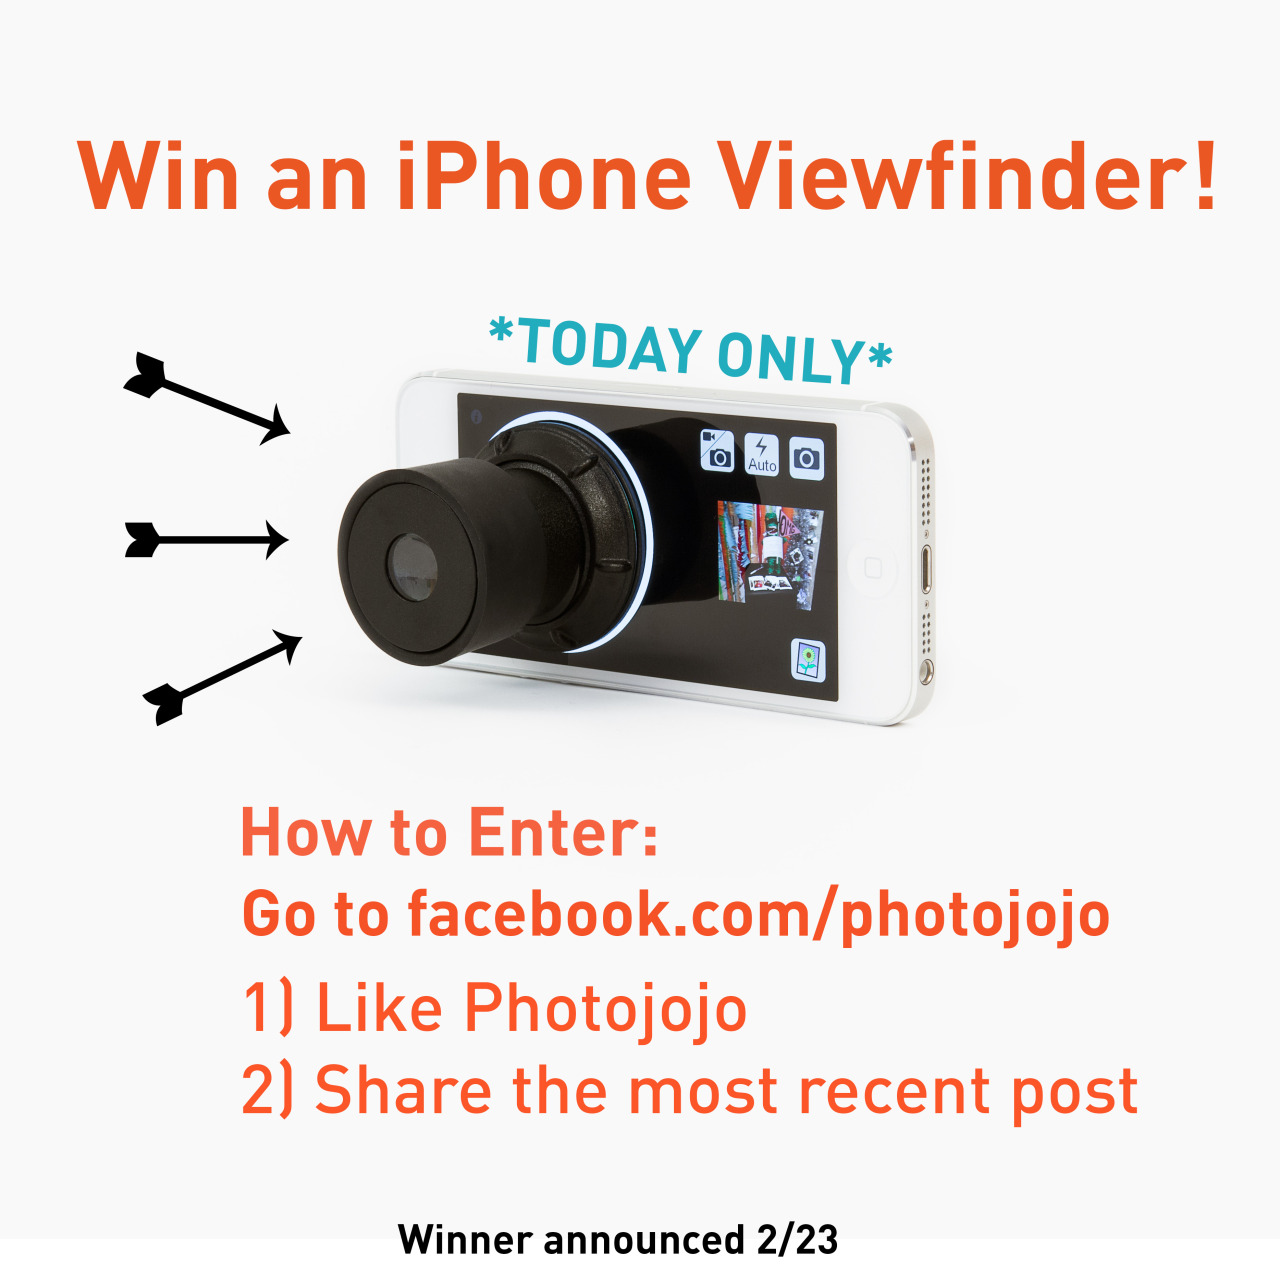 Huzzah, we're giving away an iPhone Viewfinder today! Just head over to our Facebook page and follow the instructions above to enter. We'll announce a lucky winner tomorrow, 2/23.